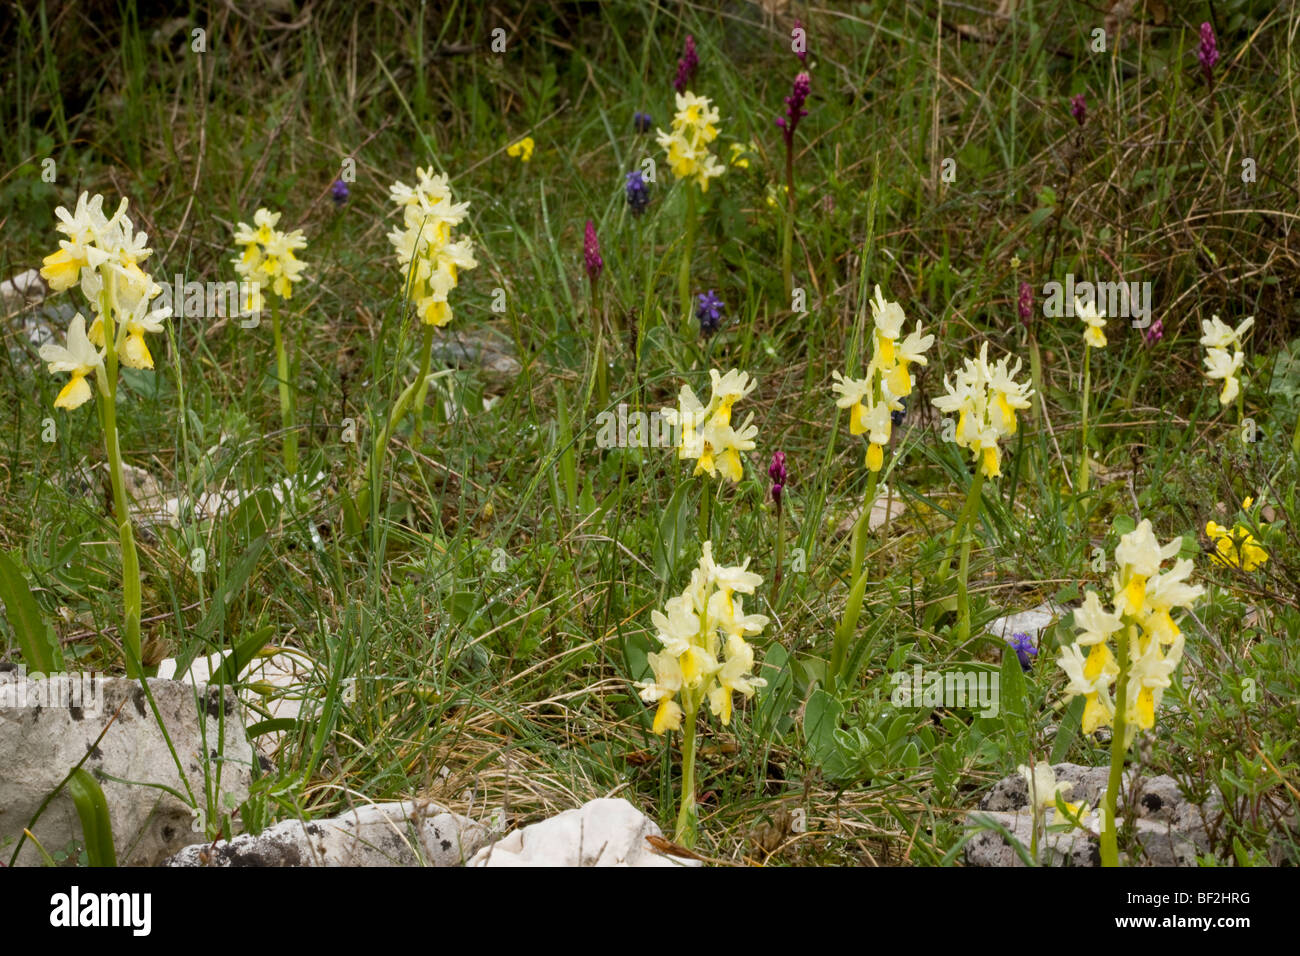 Masses of few-flowered orchids Orchis pauciflora on limestone, on the Gargano Peninsula, Italy. - Stock Image